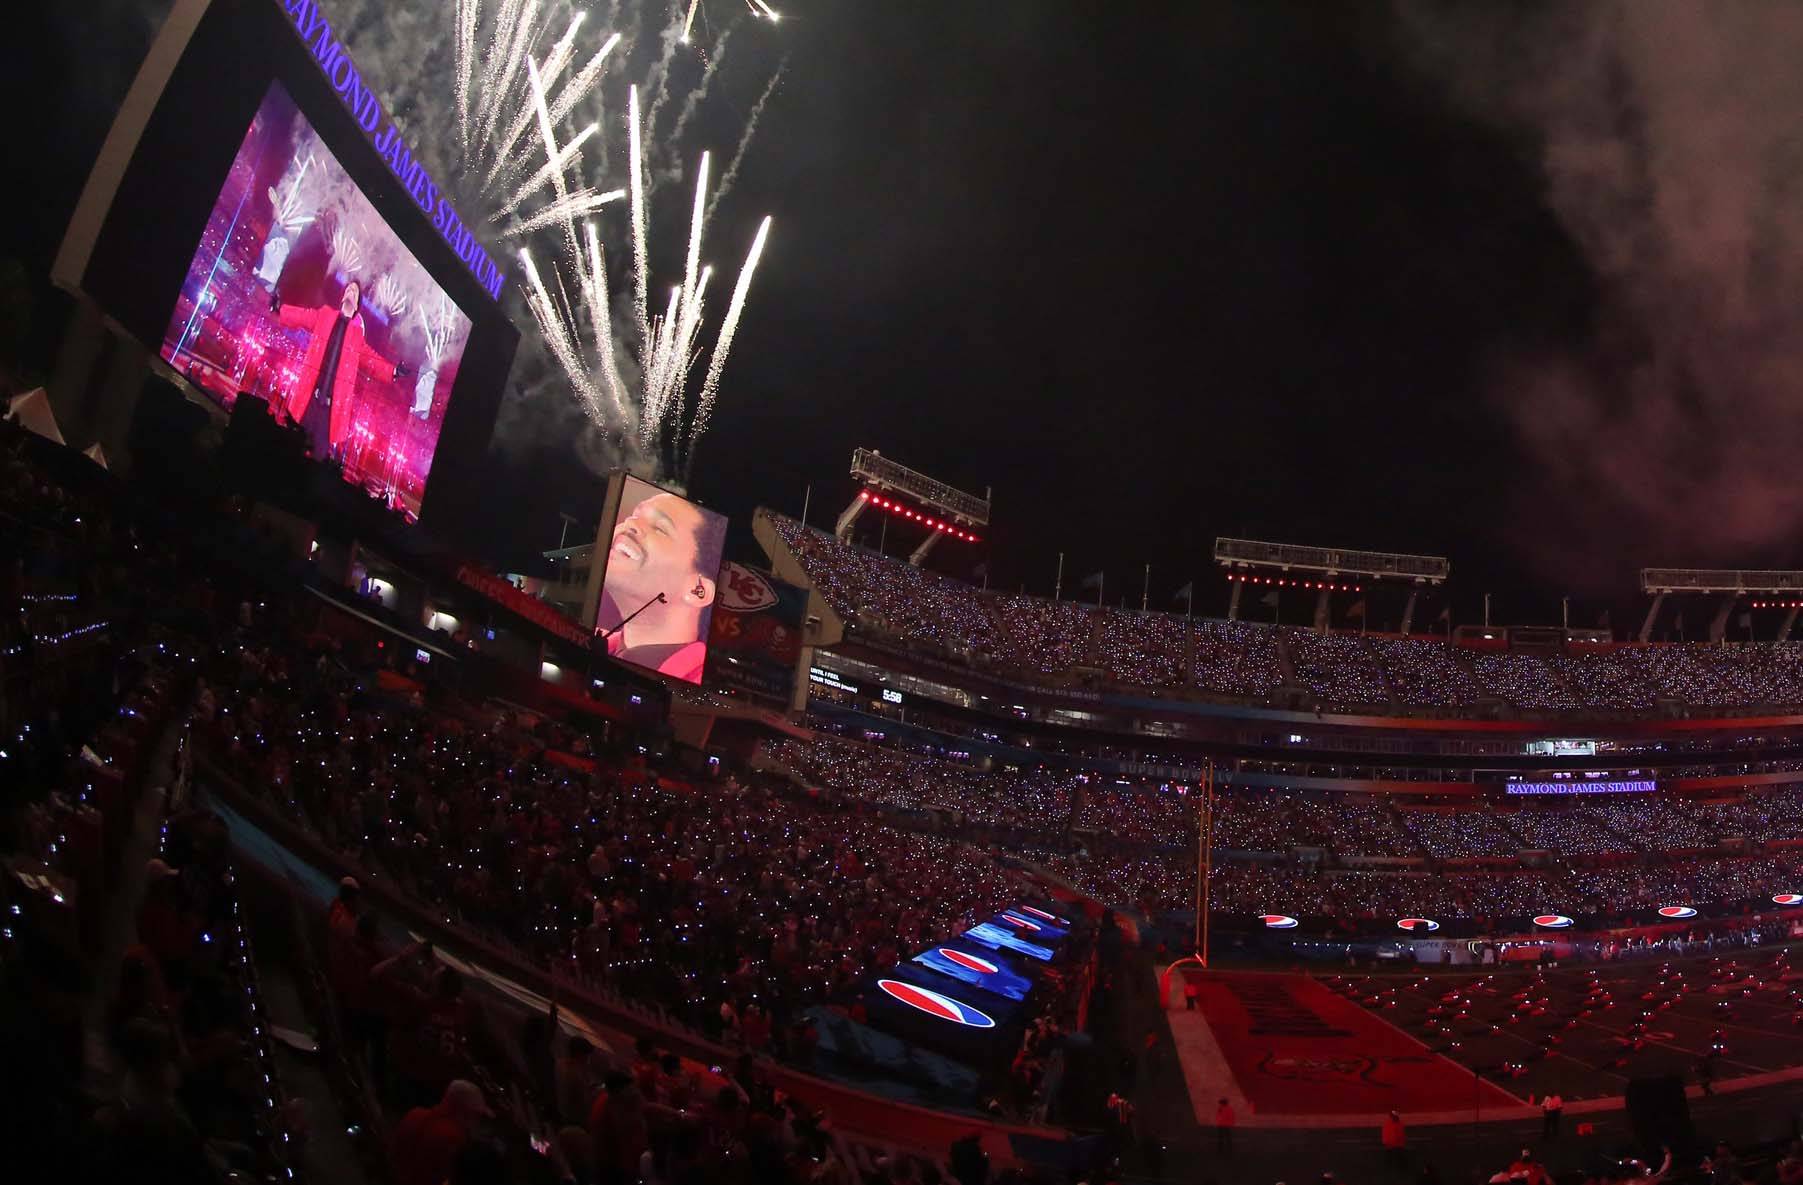 The Weeknd performs during the Super Bowl Halftime Show of Super Bowl LV between the Kansas City Chiefs and the Tampa Bay Buccaneers at Raymond James Stadium on February 7, 2021.